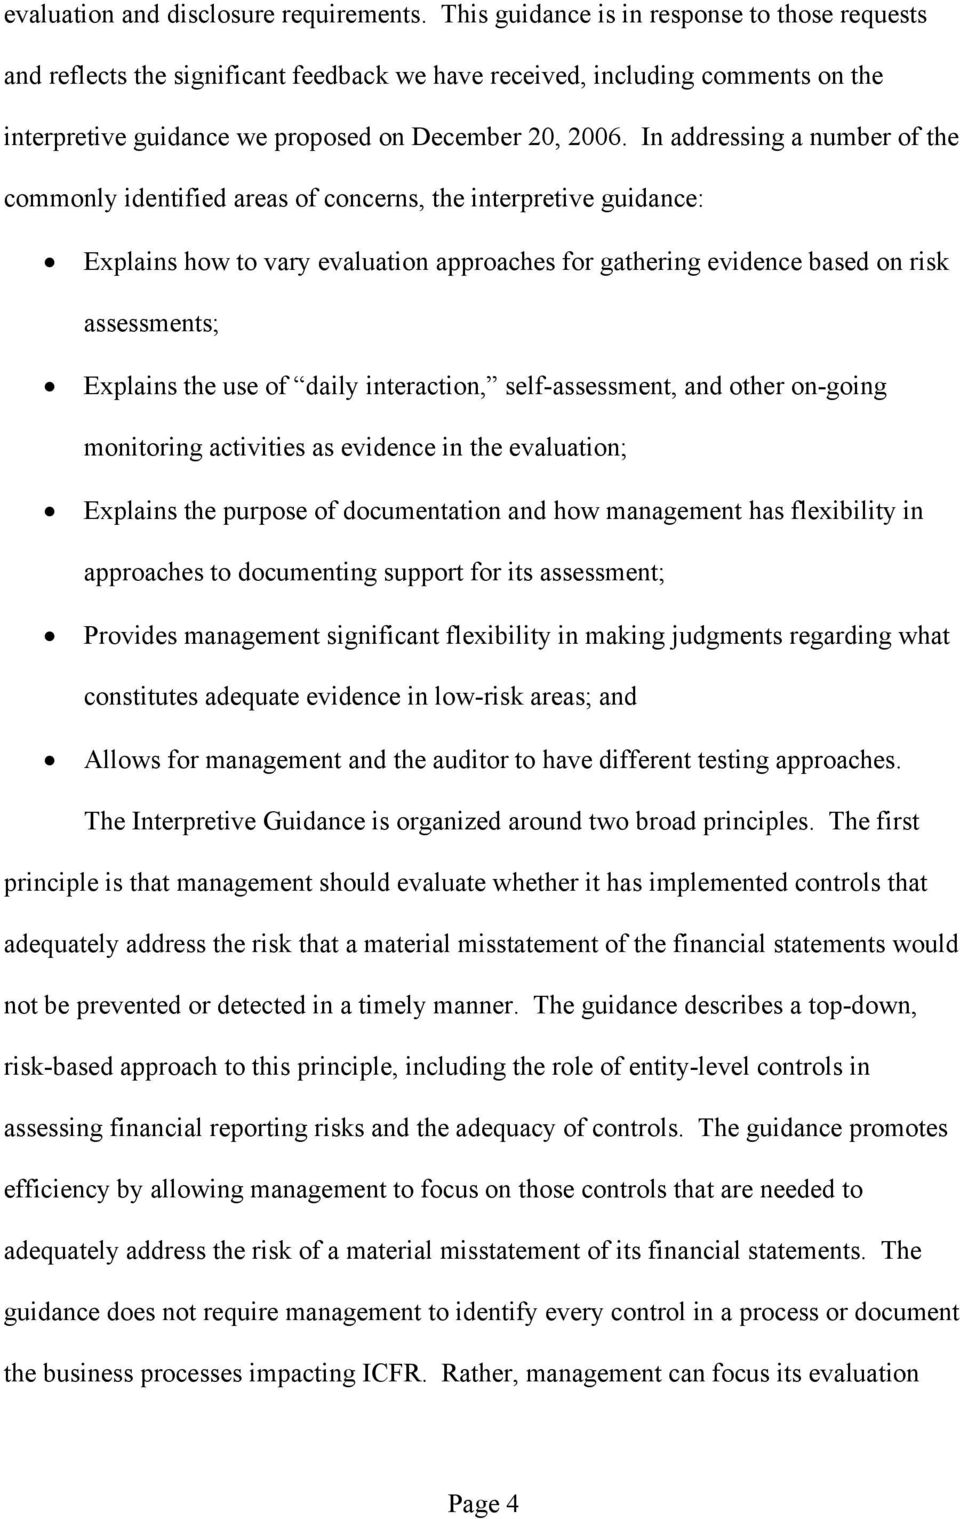 In addressing a number of the commonly identified areas of concerns, the interpretive guidance: Explains how to vary evaluation approaches for gathering evidence based on risk assessments; Explains